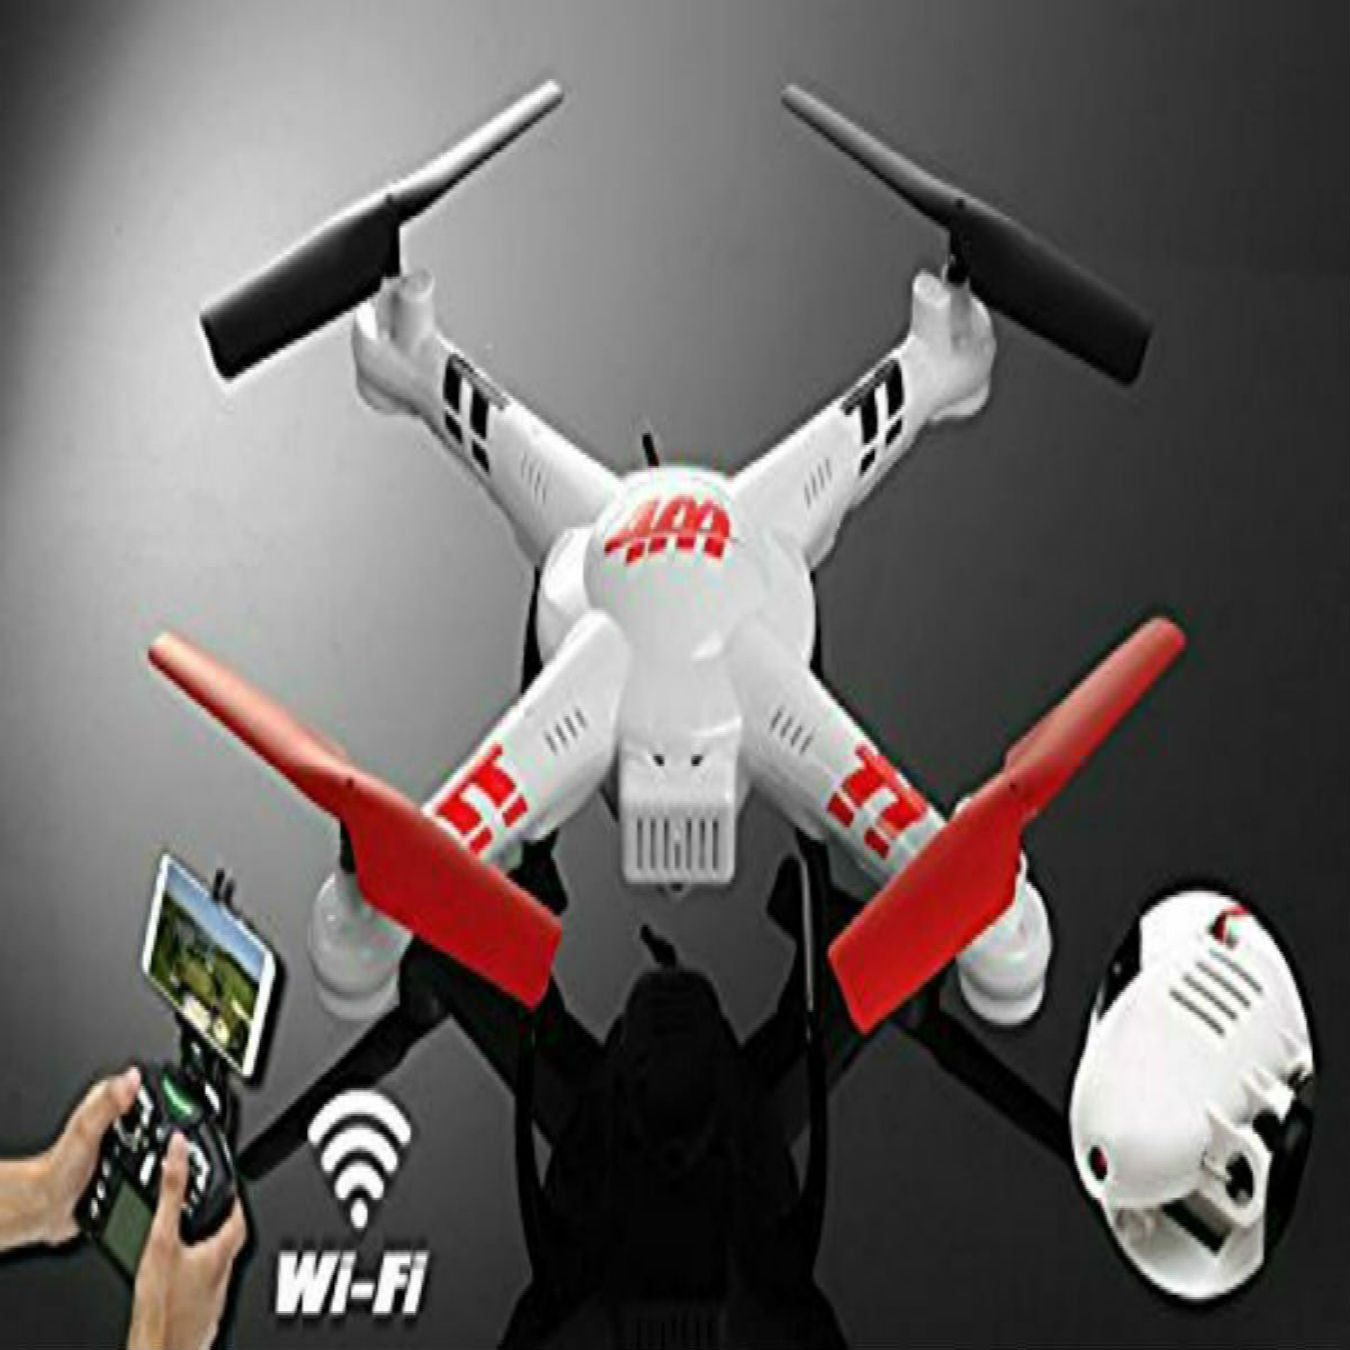 SkyCo V686K WiFi FPV Quadcopter Drone with Camera Live Video HD 720P Android/iOS APP Compatible with 3D VR Headset,One-Key Return & Headless Mode & 360 Degree Flips Roll Real-time Video